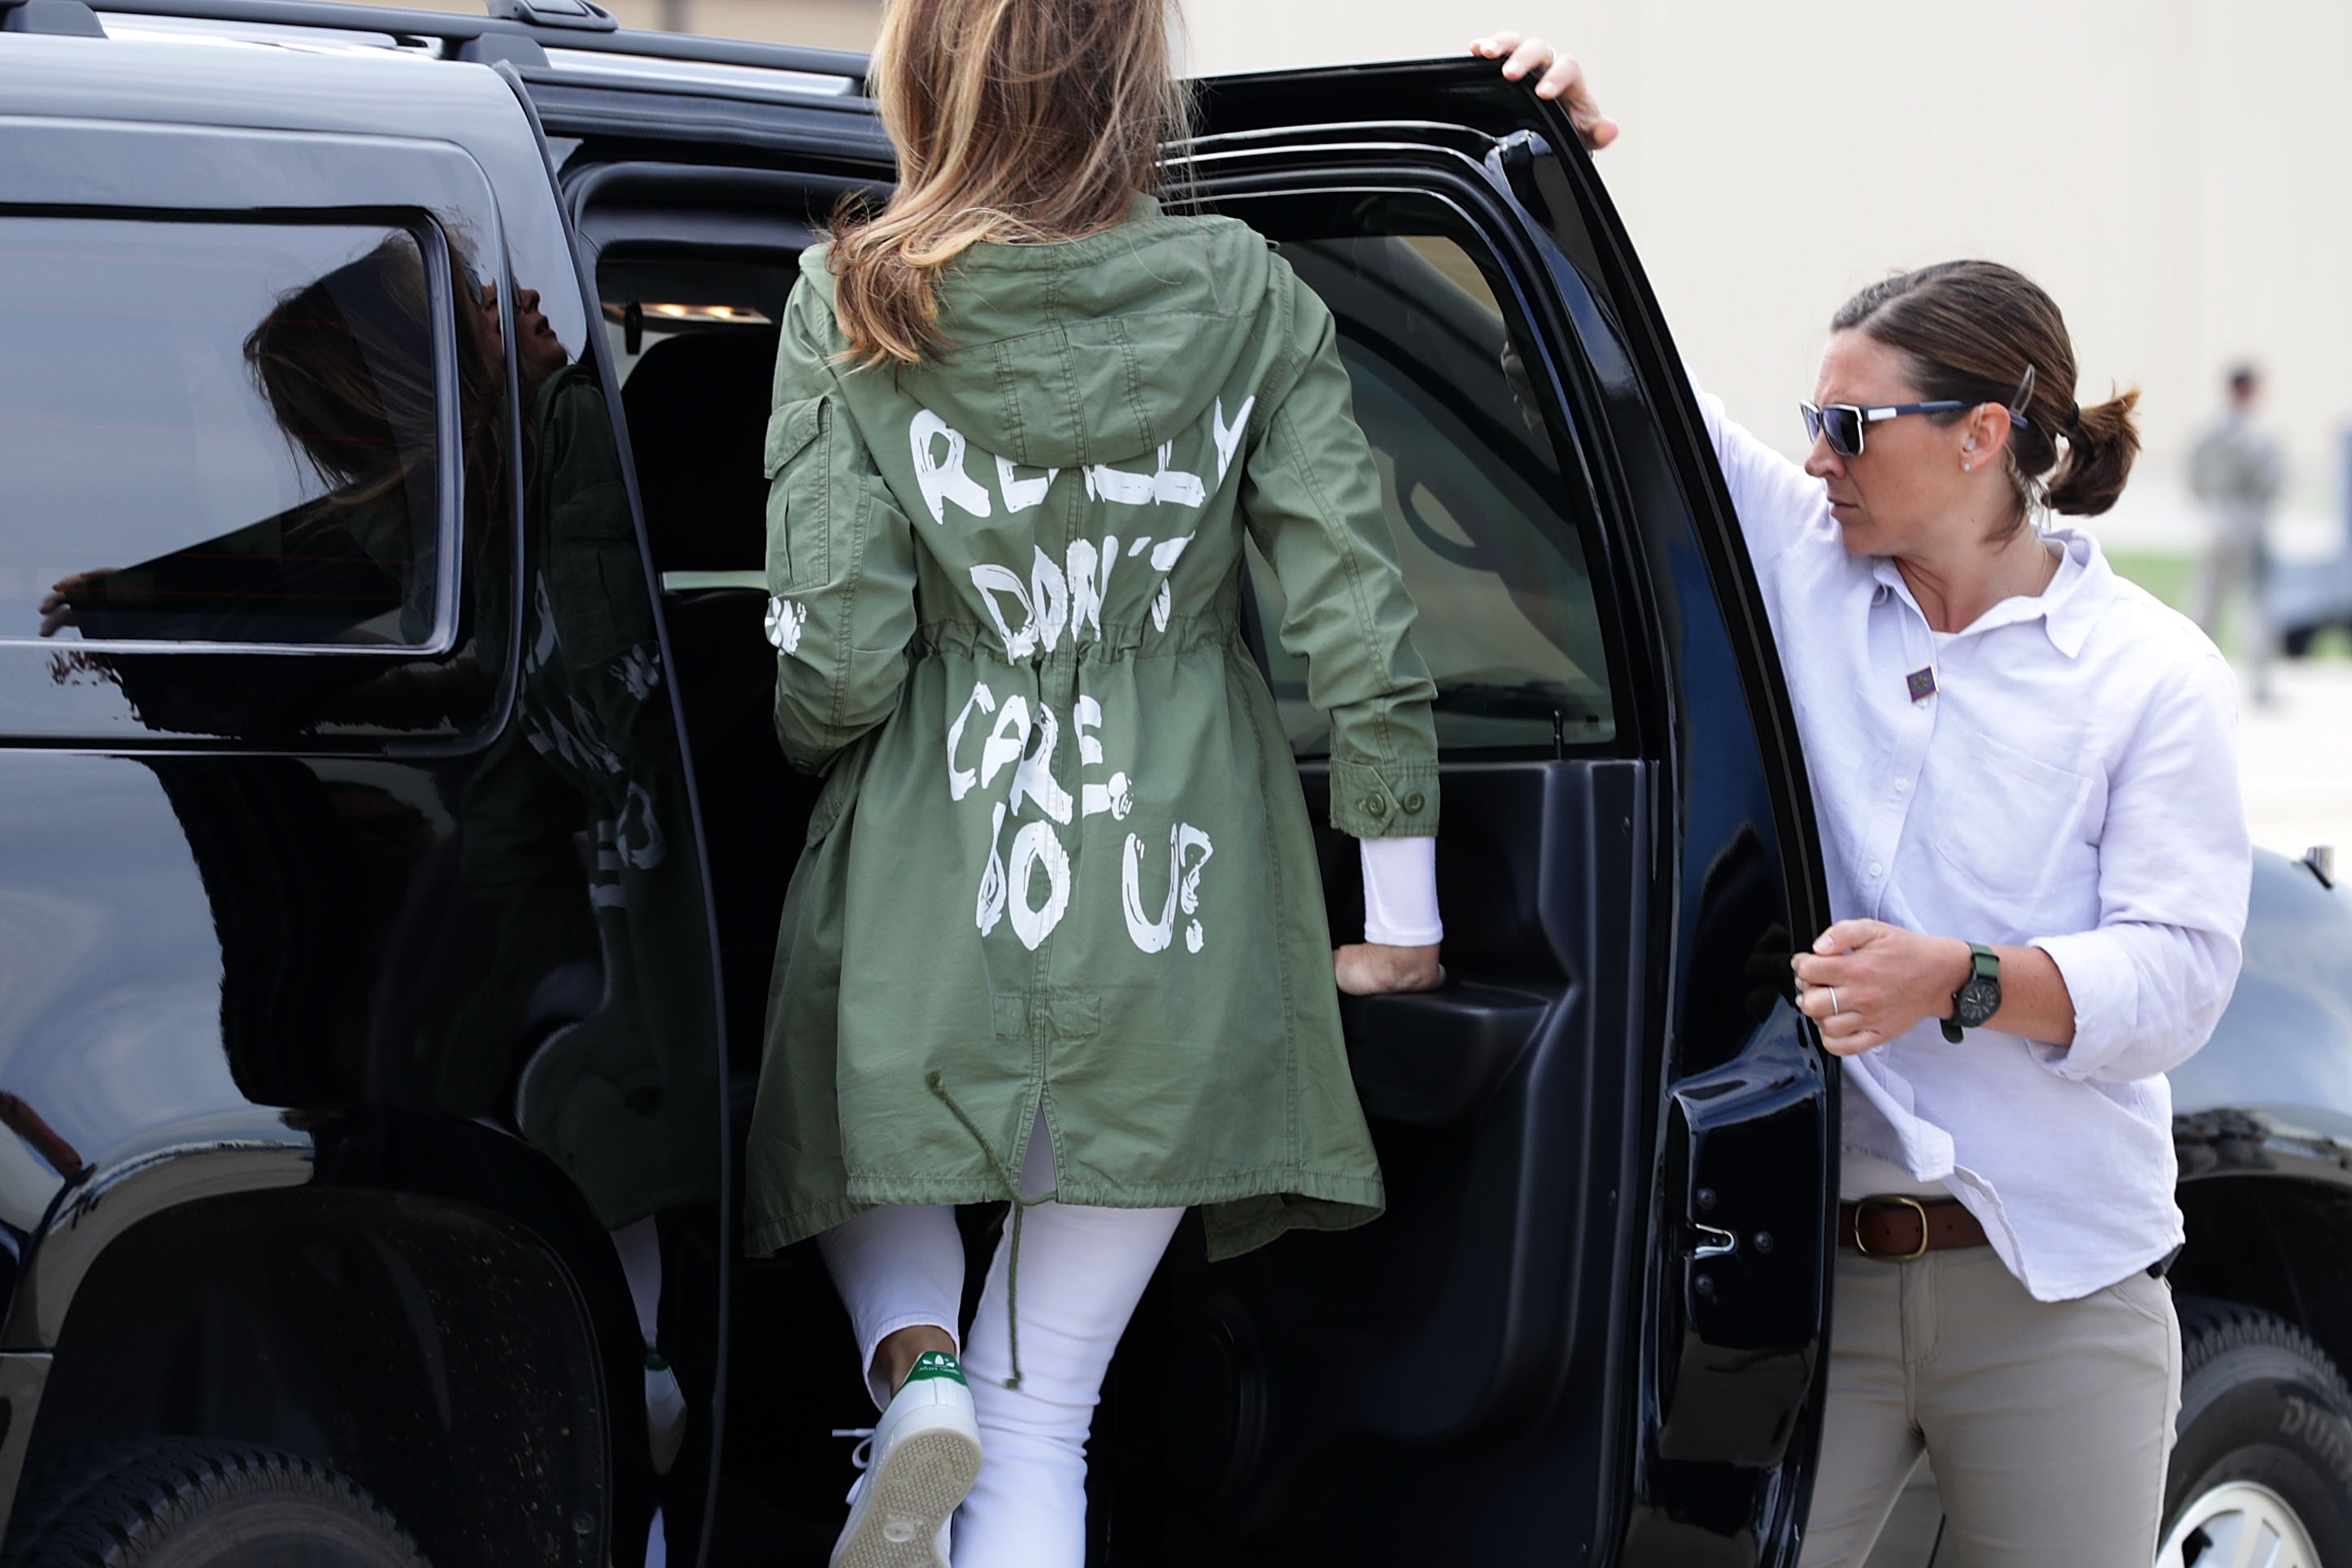 U.S. First Lady Melania Trump climbs back into her motorcade after traveling to Texas to visit facilities that house and care for children taken from their parents at the U.S.-Mexico border June 21, 2018, at Joint Base Andrews, Maryland. The first lady is traveling to Texas to see first hand the condition and treatment that children taken from their families at the border were receiving from the federal government. Following public outcry and criticism from members of his own party, President Donald Trump signed an executive order Wednesday to stop the separation of migrant children from their families, a practice the administration employed to deter illegal immigration at the U.S.-Mexico border. (Getty)